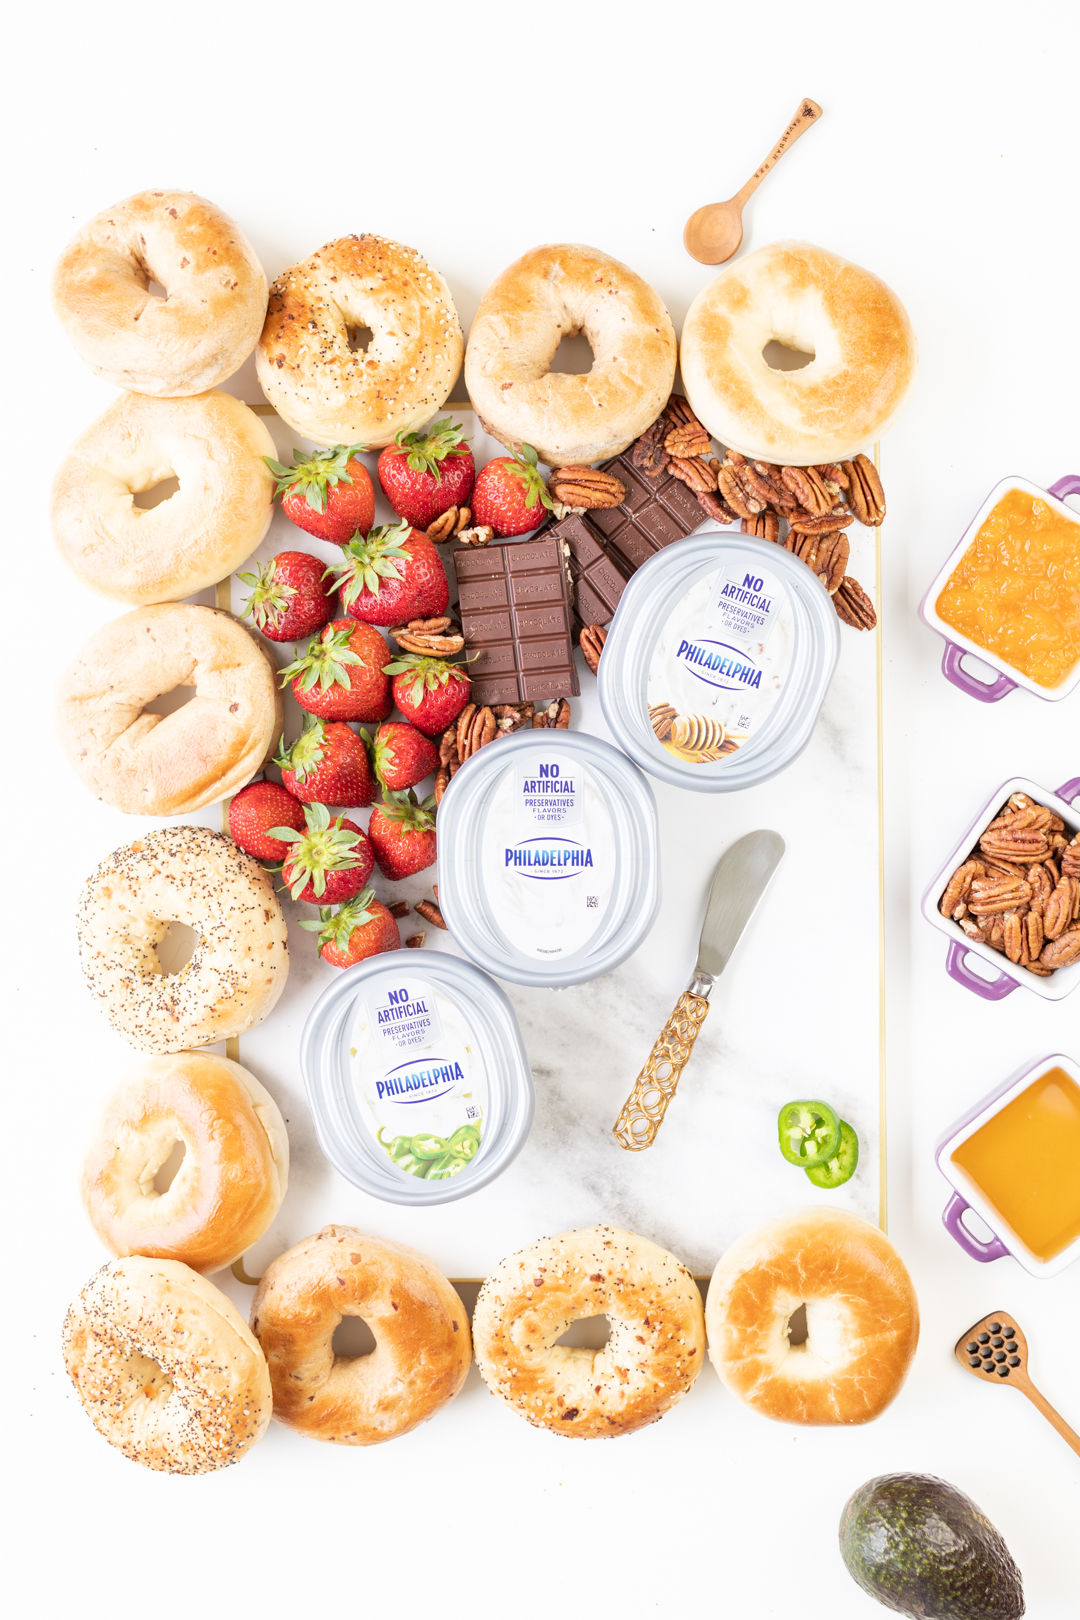 Setting up a breakfast board with bagels and spreads